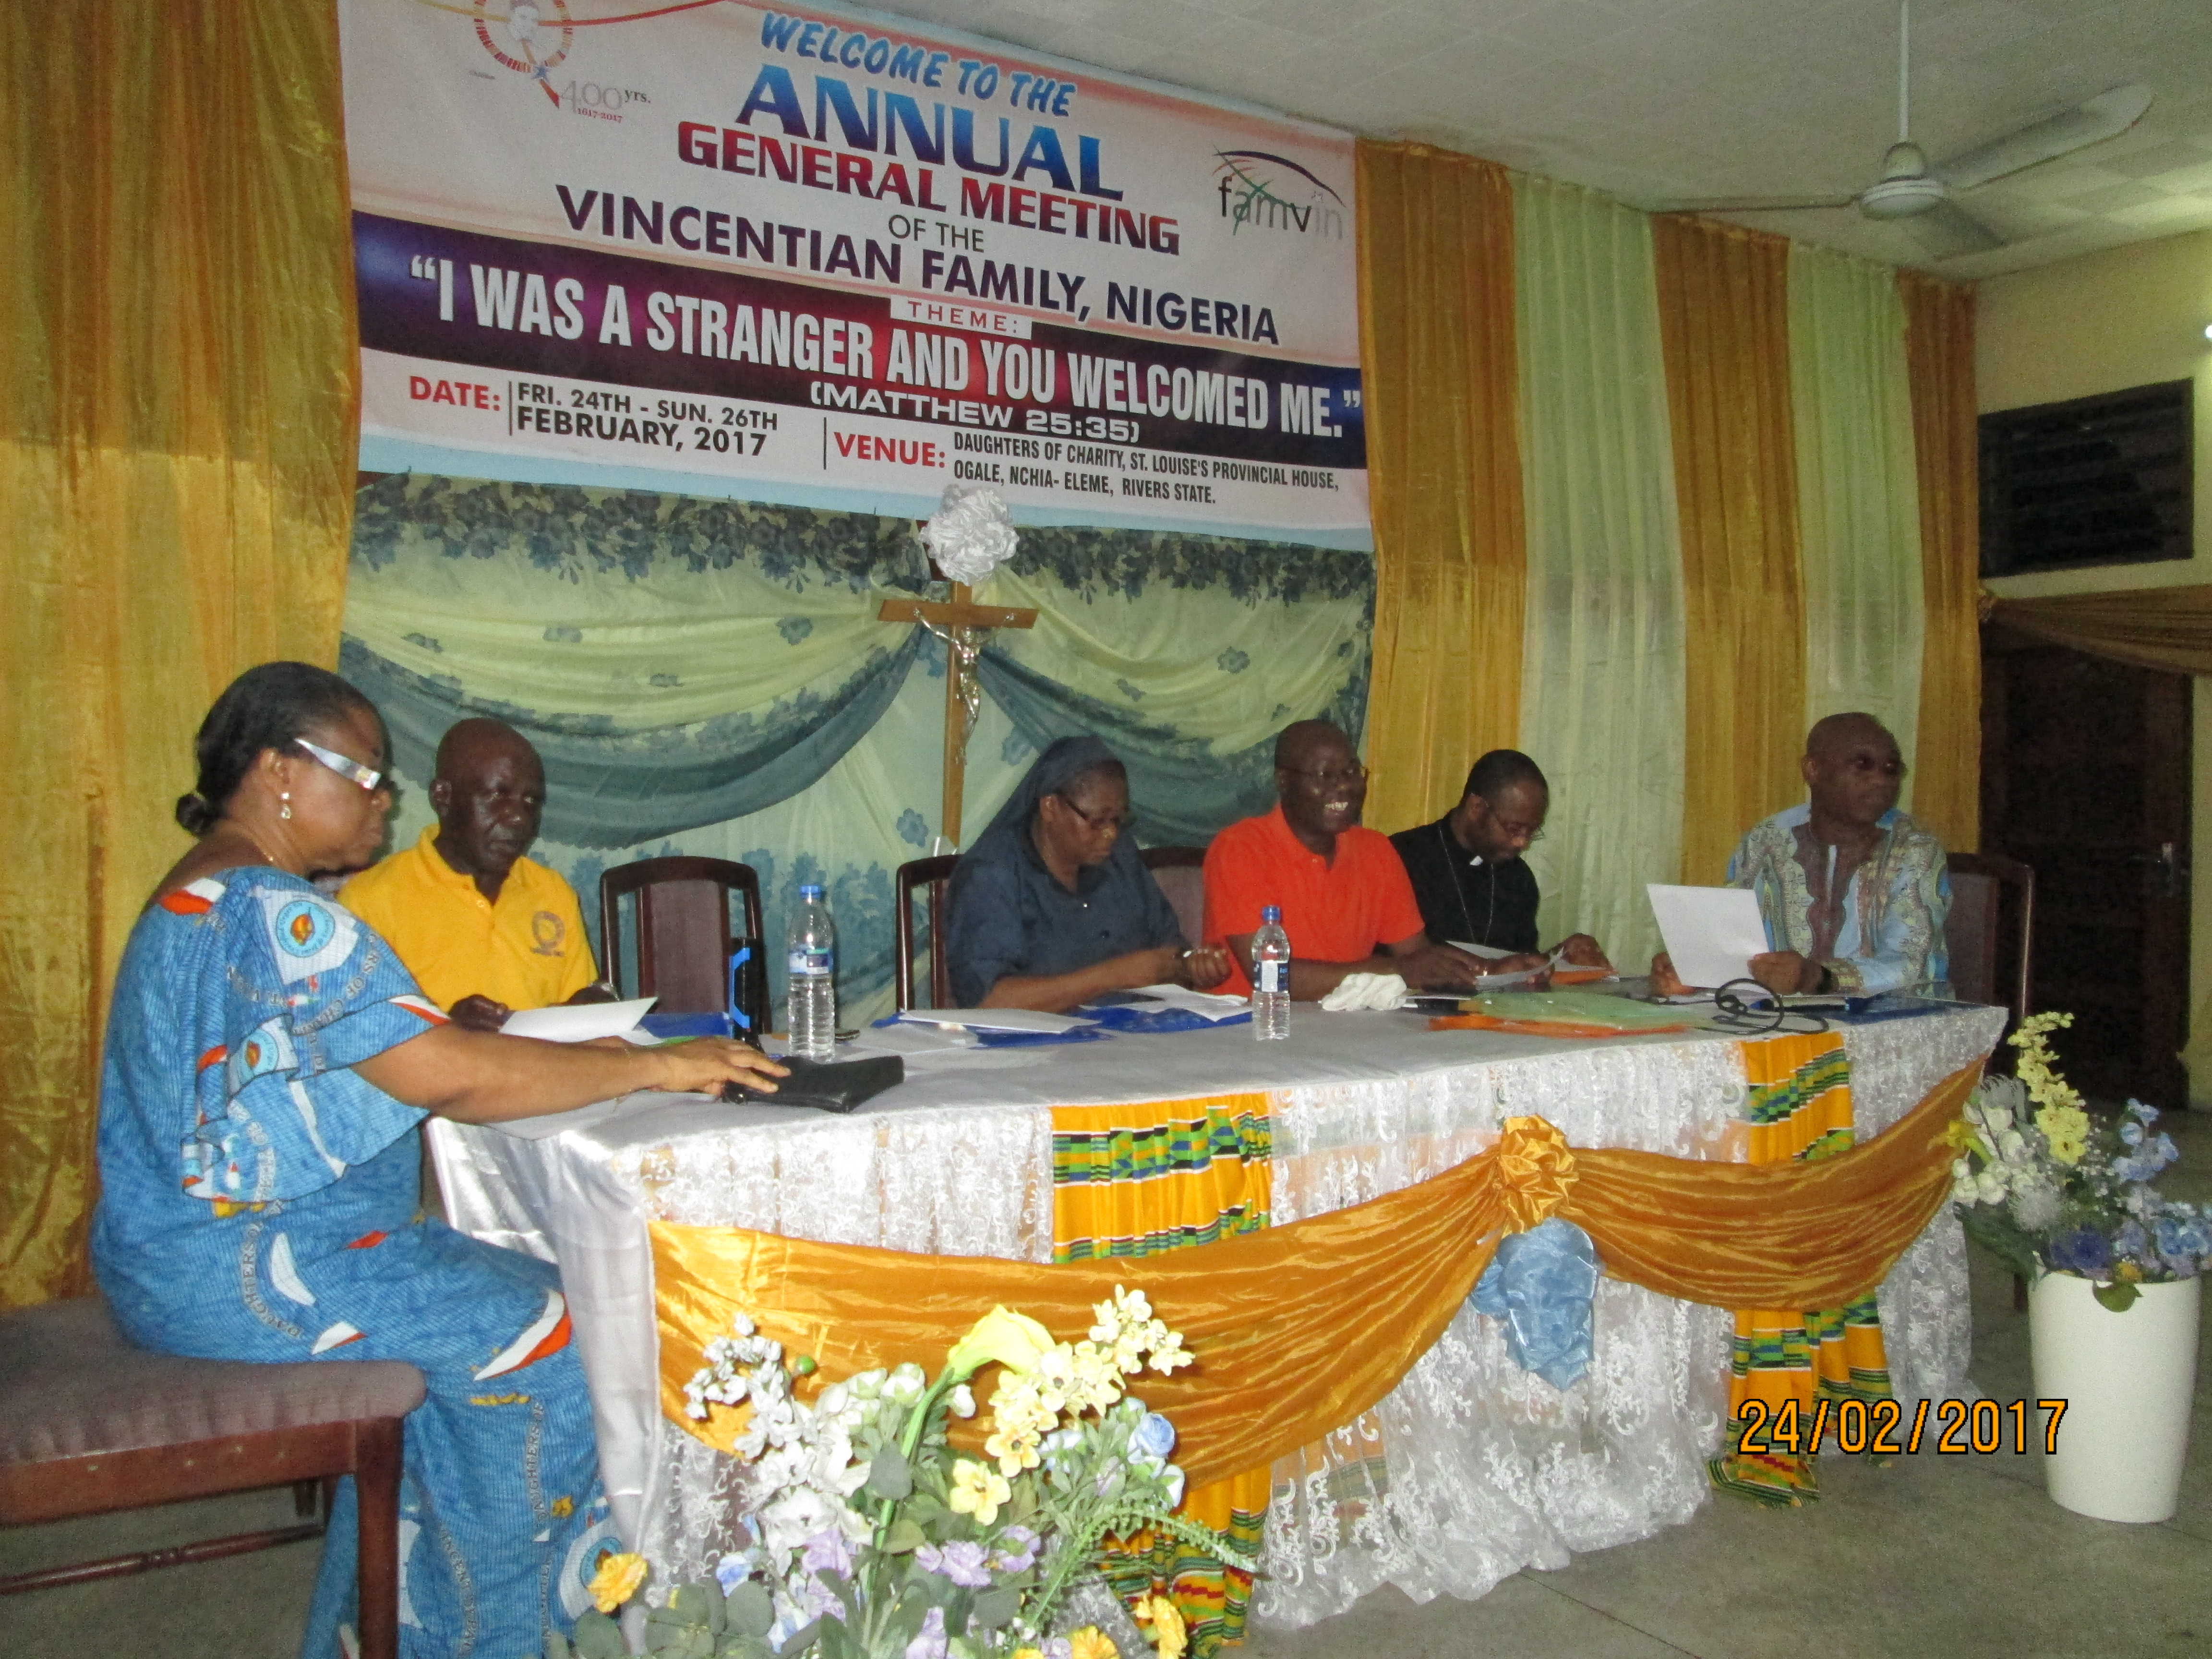 Vincentian Family Annual General Meeting in Nigeria 2017